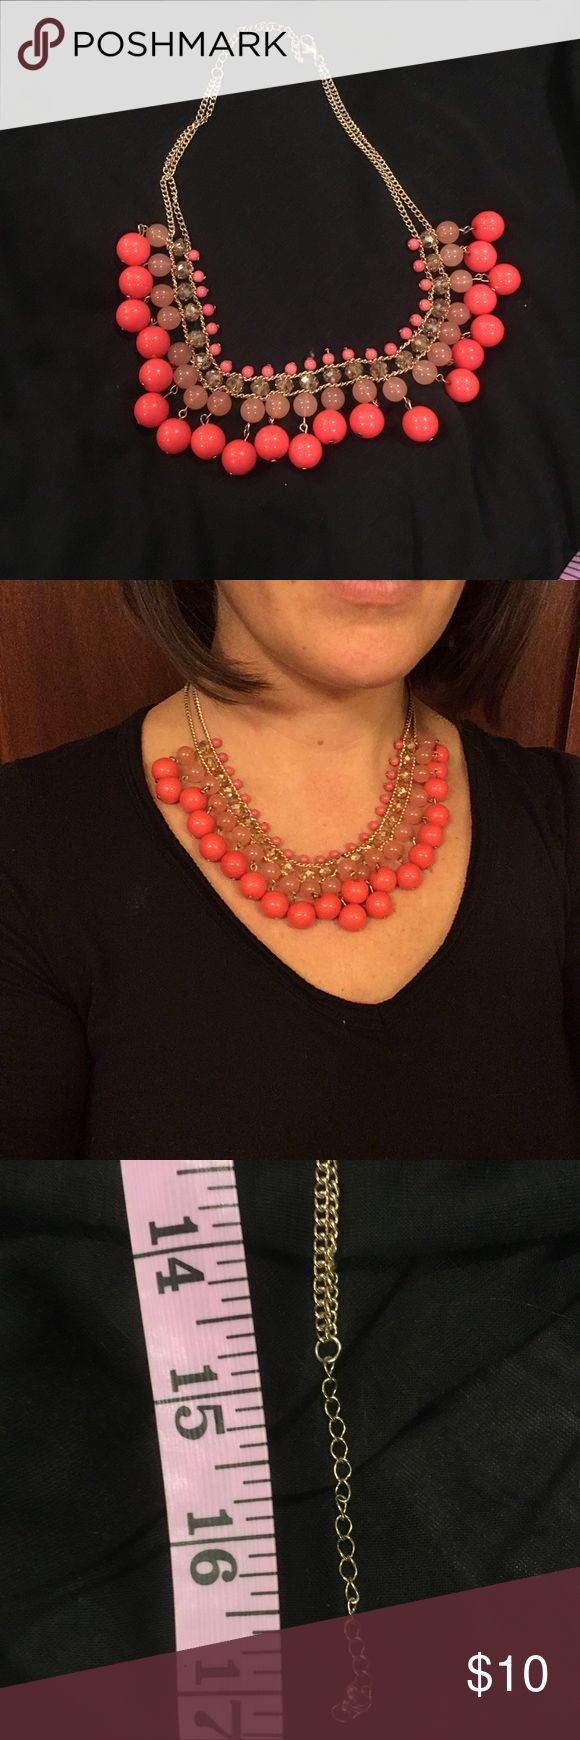 """Coral statement necklace 17"""" statement necklace, gold metal and coral-colored beads. Purchased from Francesca's Collection. Jewelry Necklaces"""